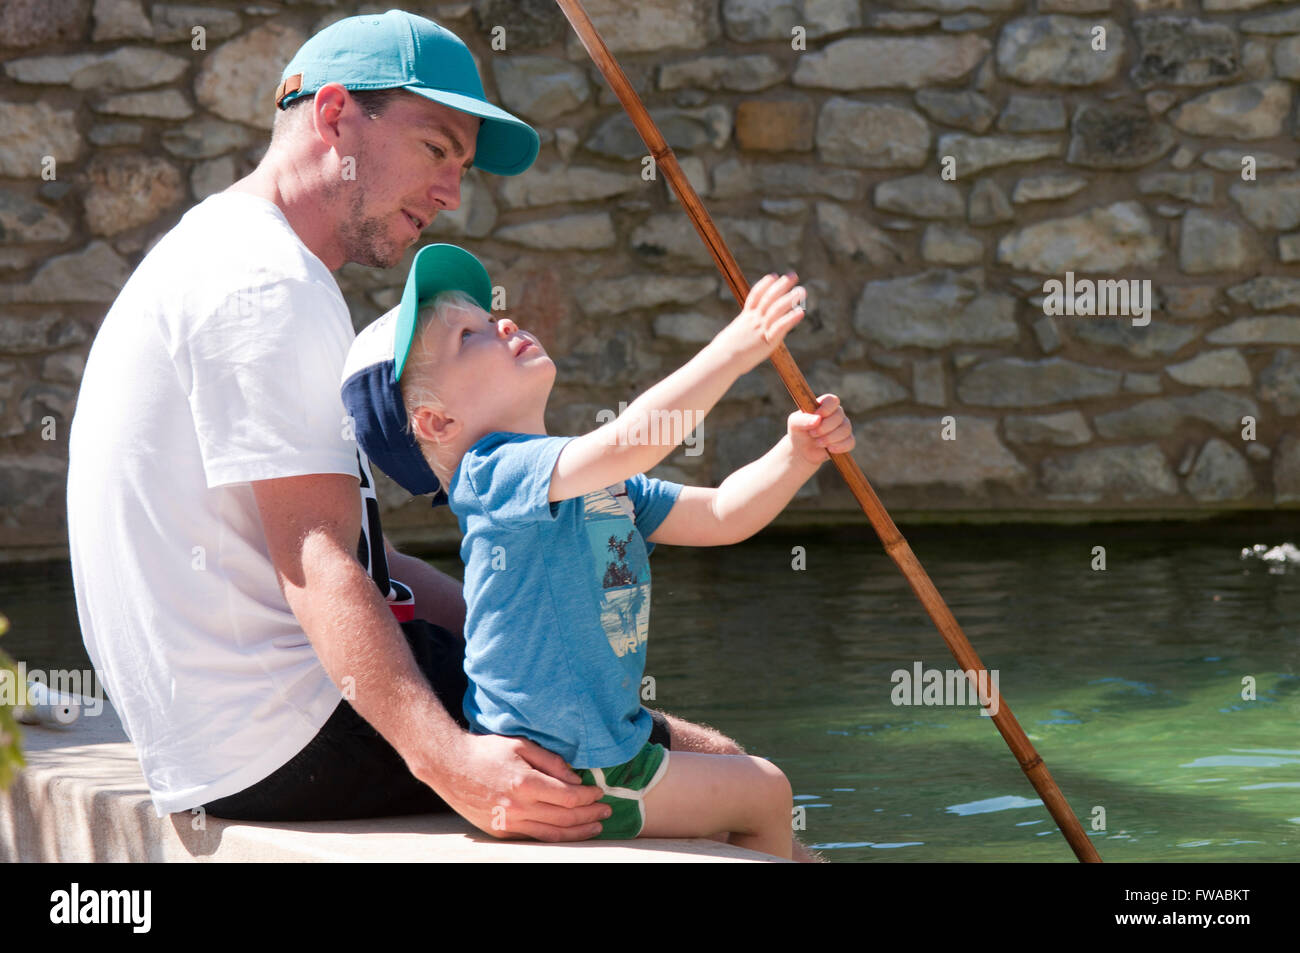 Father and son sitting at the edge of a pool dangling their feet in the water playing with a fishing net - Stock Image